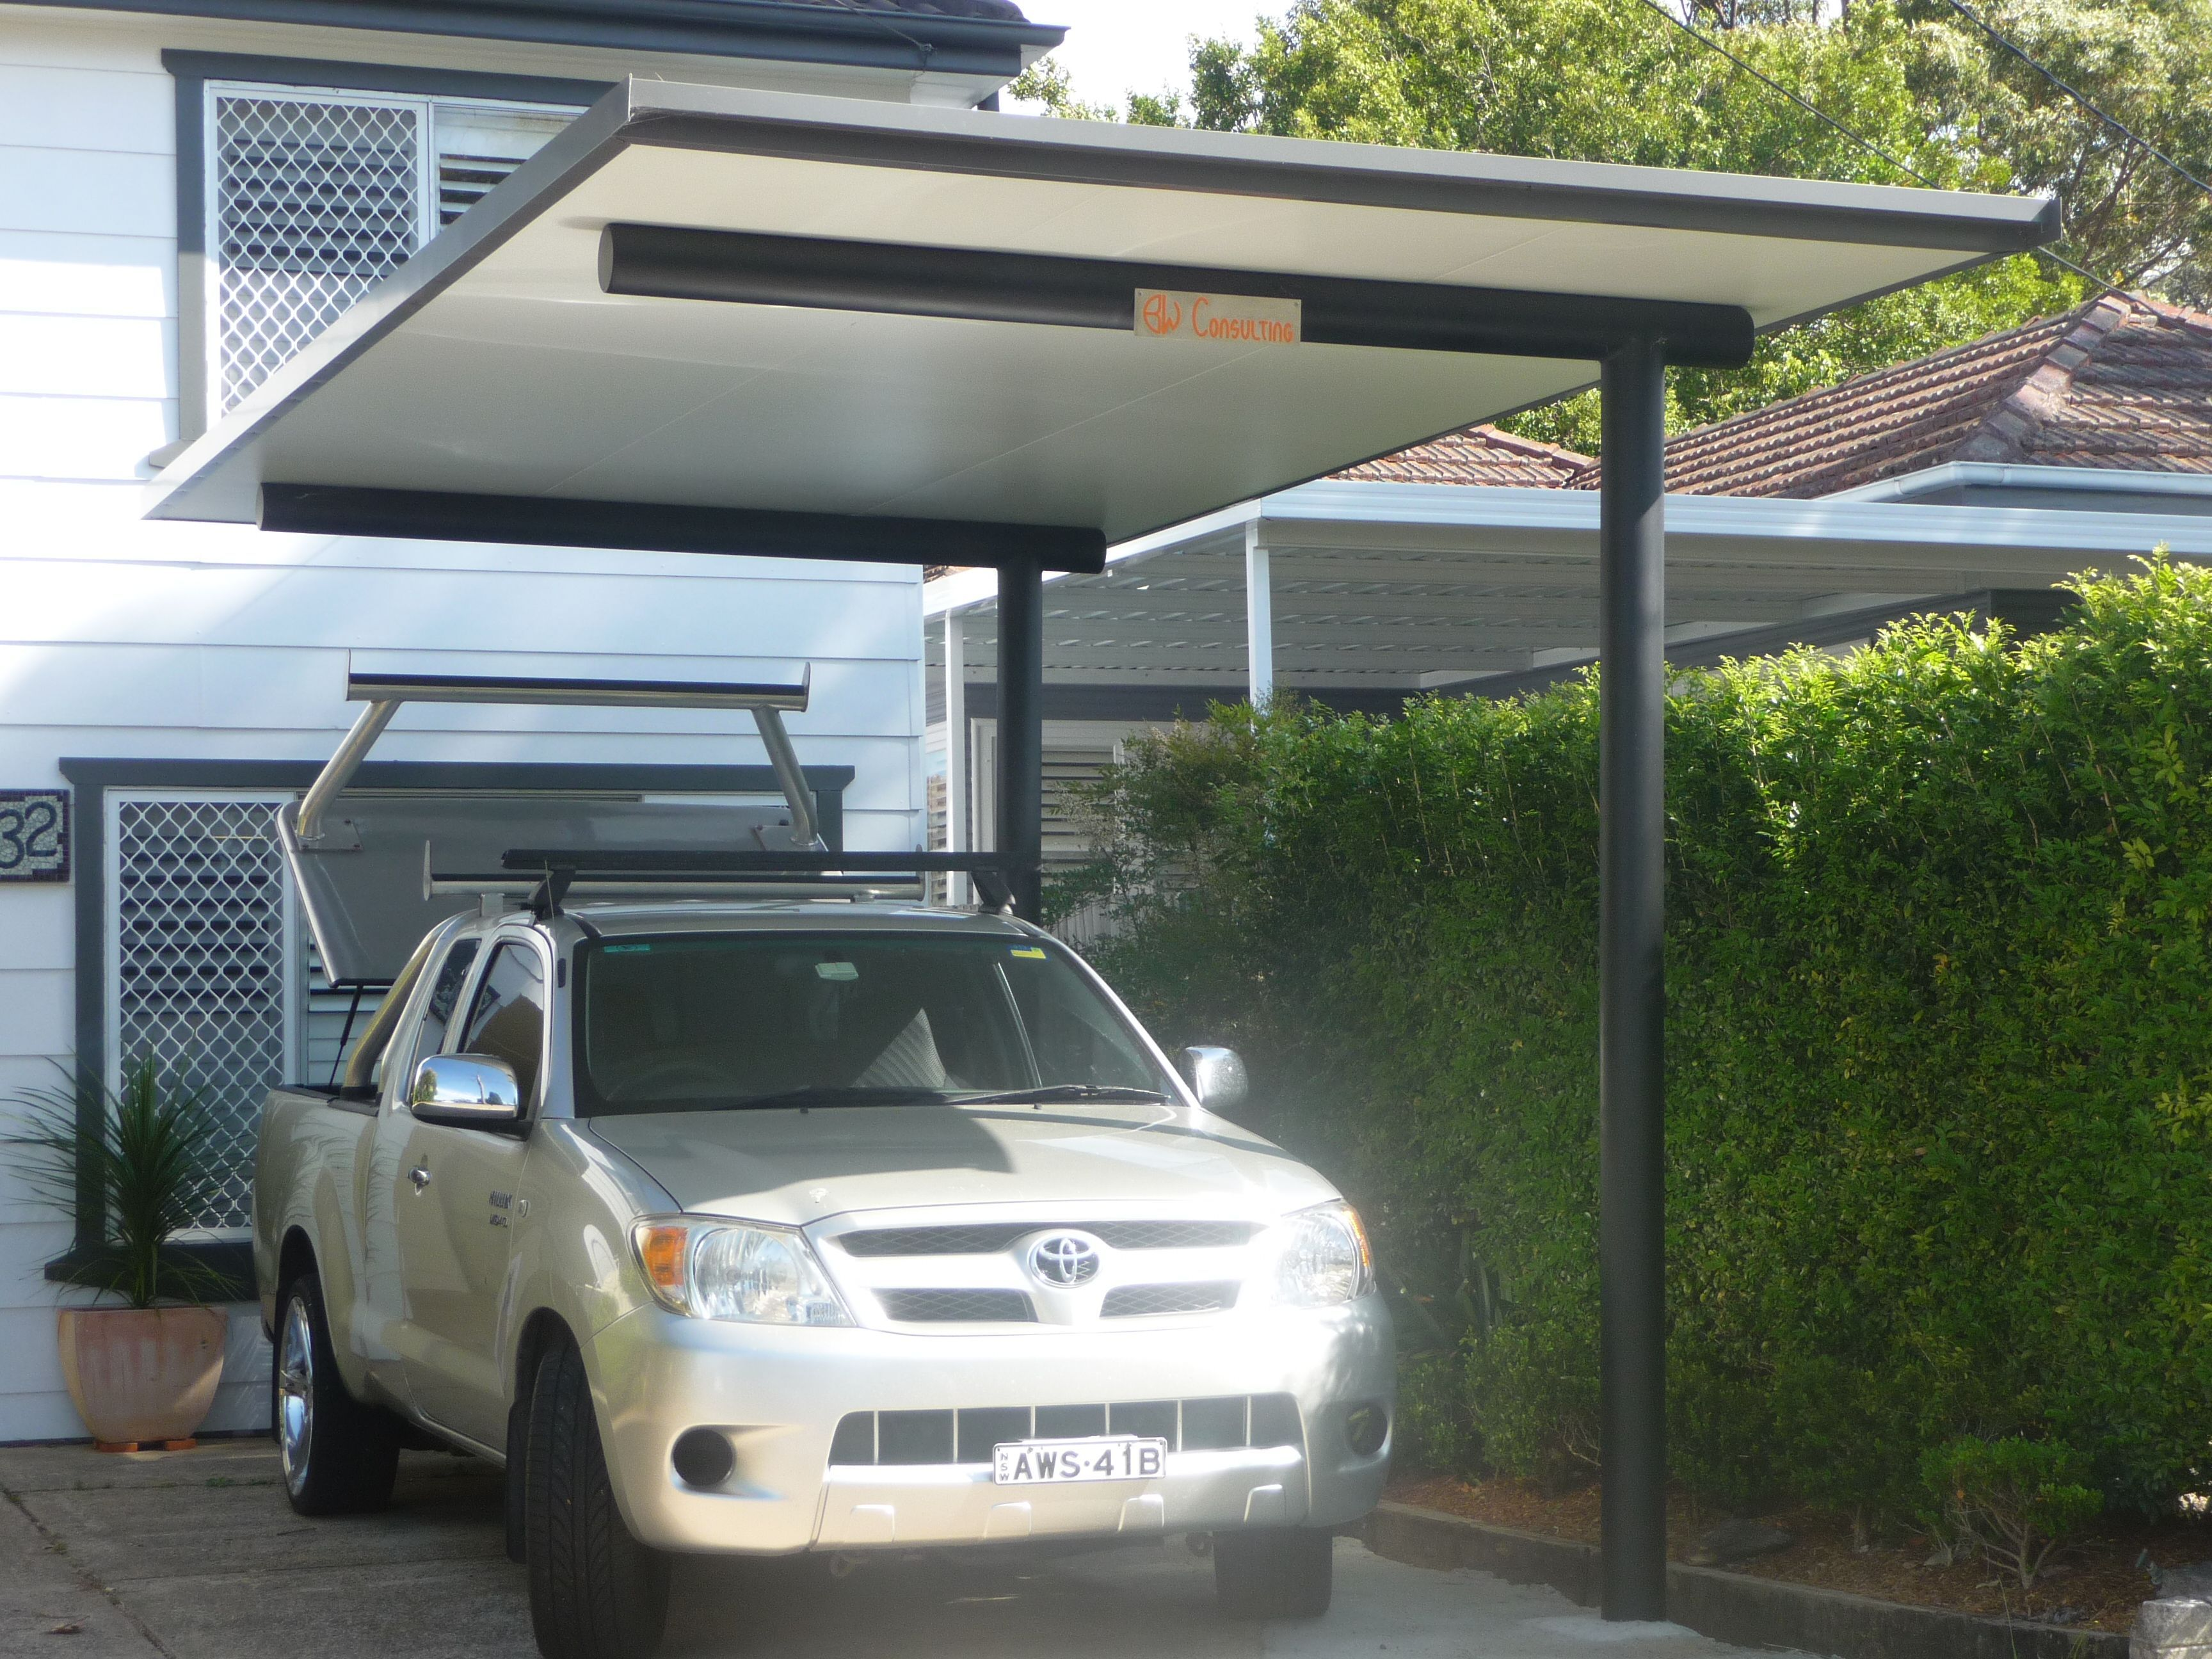 5 Astonishing Cool Tips Canopy Carport Covered Patios Window Canopy Modern Canopy Walkway State Parks Pop Up Canopy Carport Designs Cantilever Carport Pergola